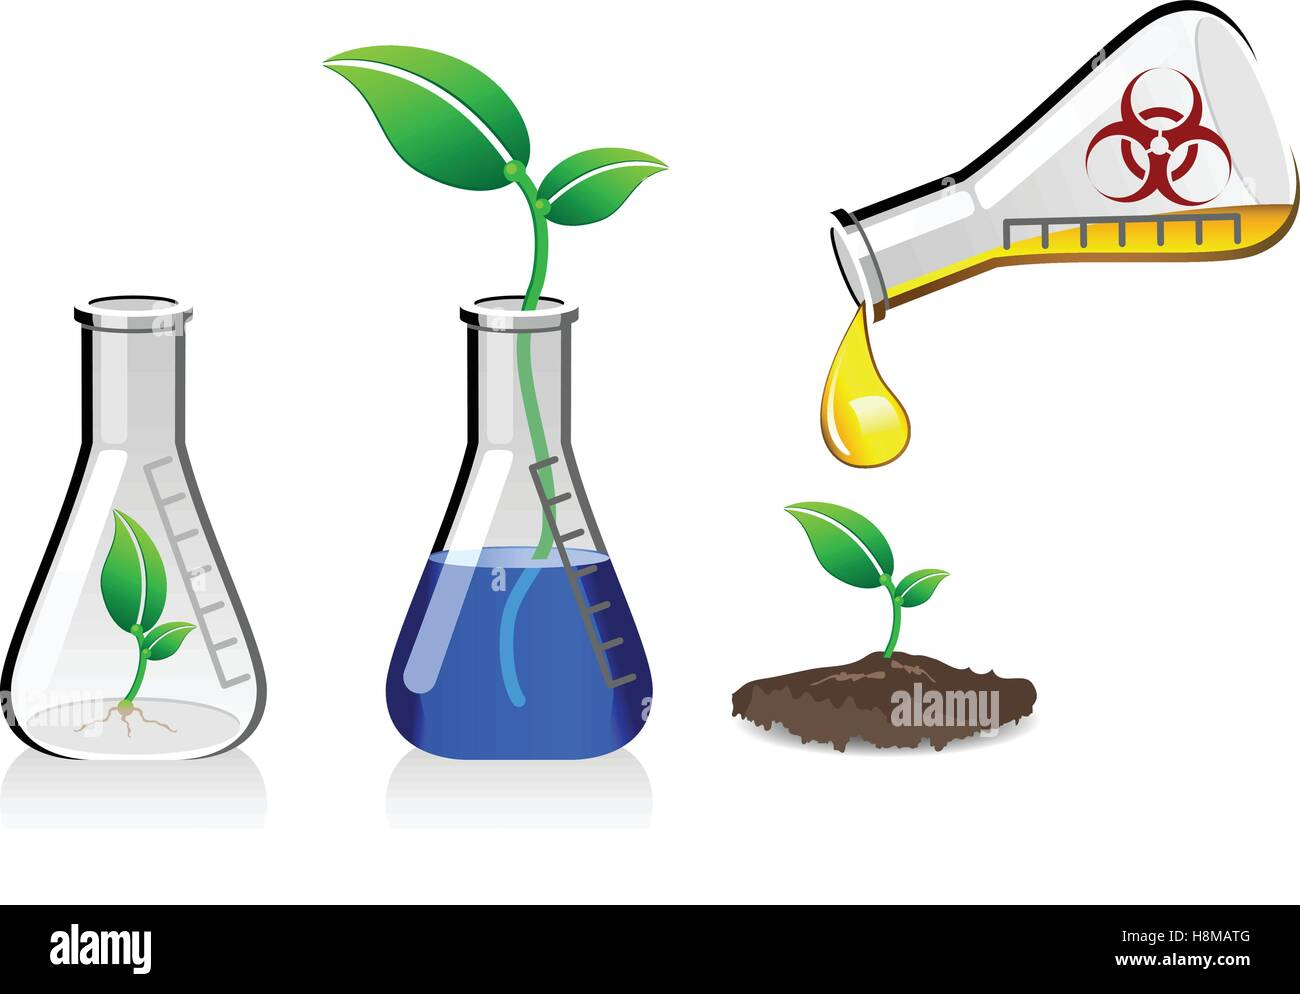 Plants being grown in glass beakers, genetically modified organism in the food industry - Stock Image